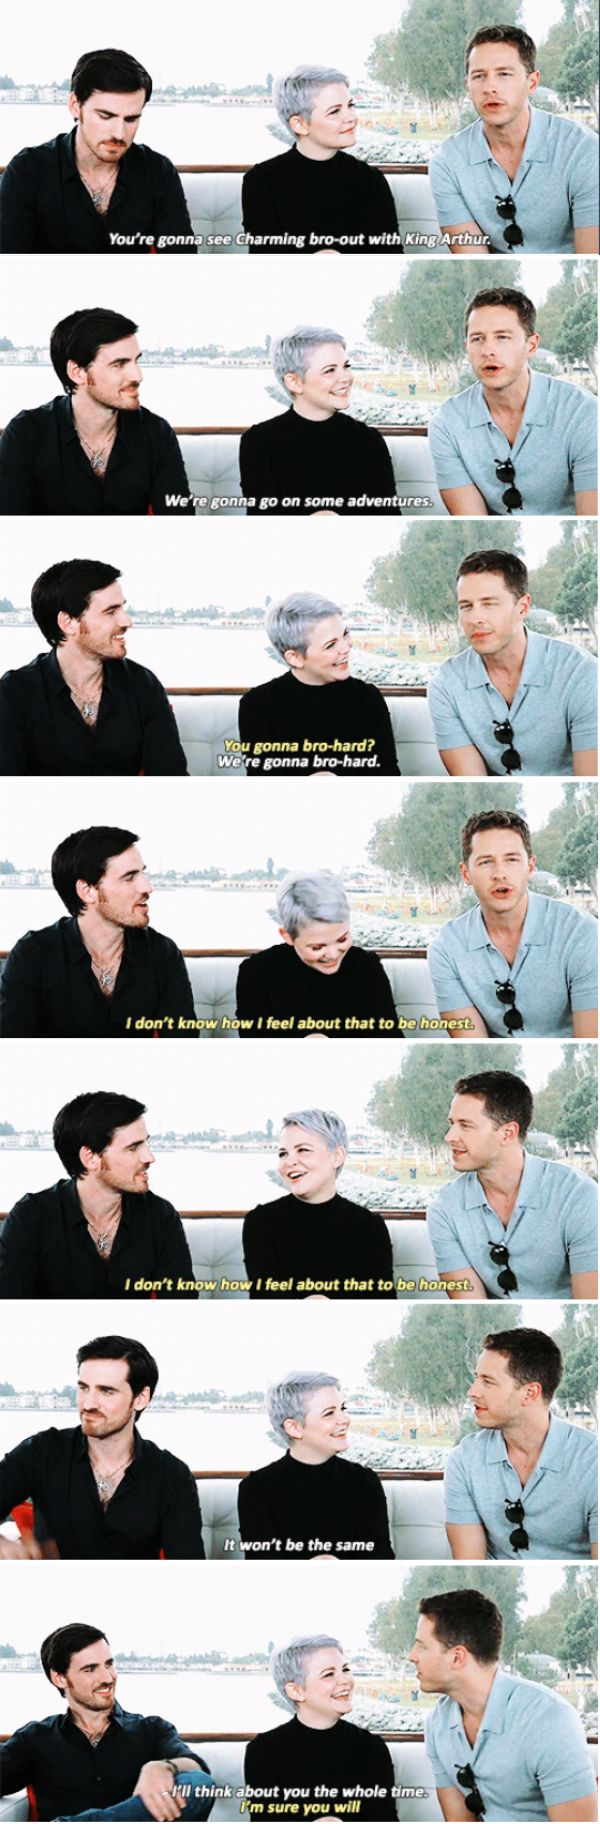 Colin O'Donoghue, Ginnifer Goodwin and Josh Dallas - Once Upon a Time @ Comic-Con 2015